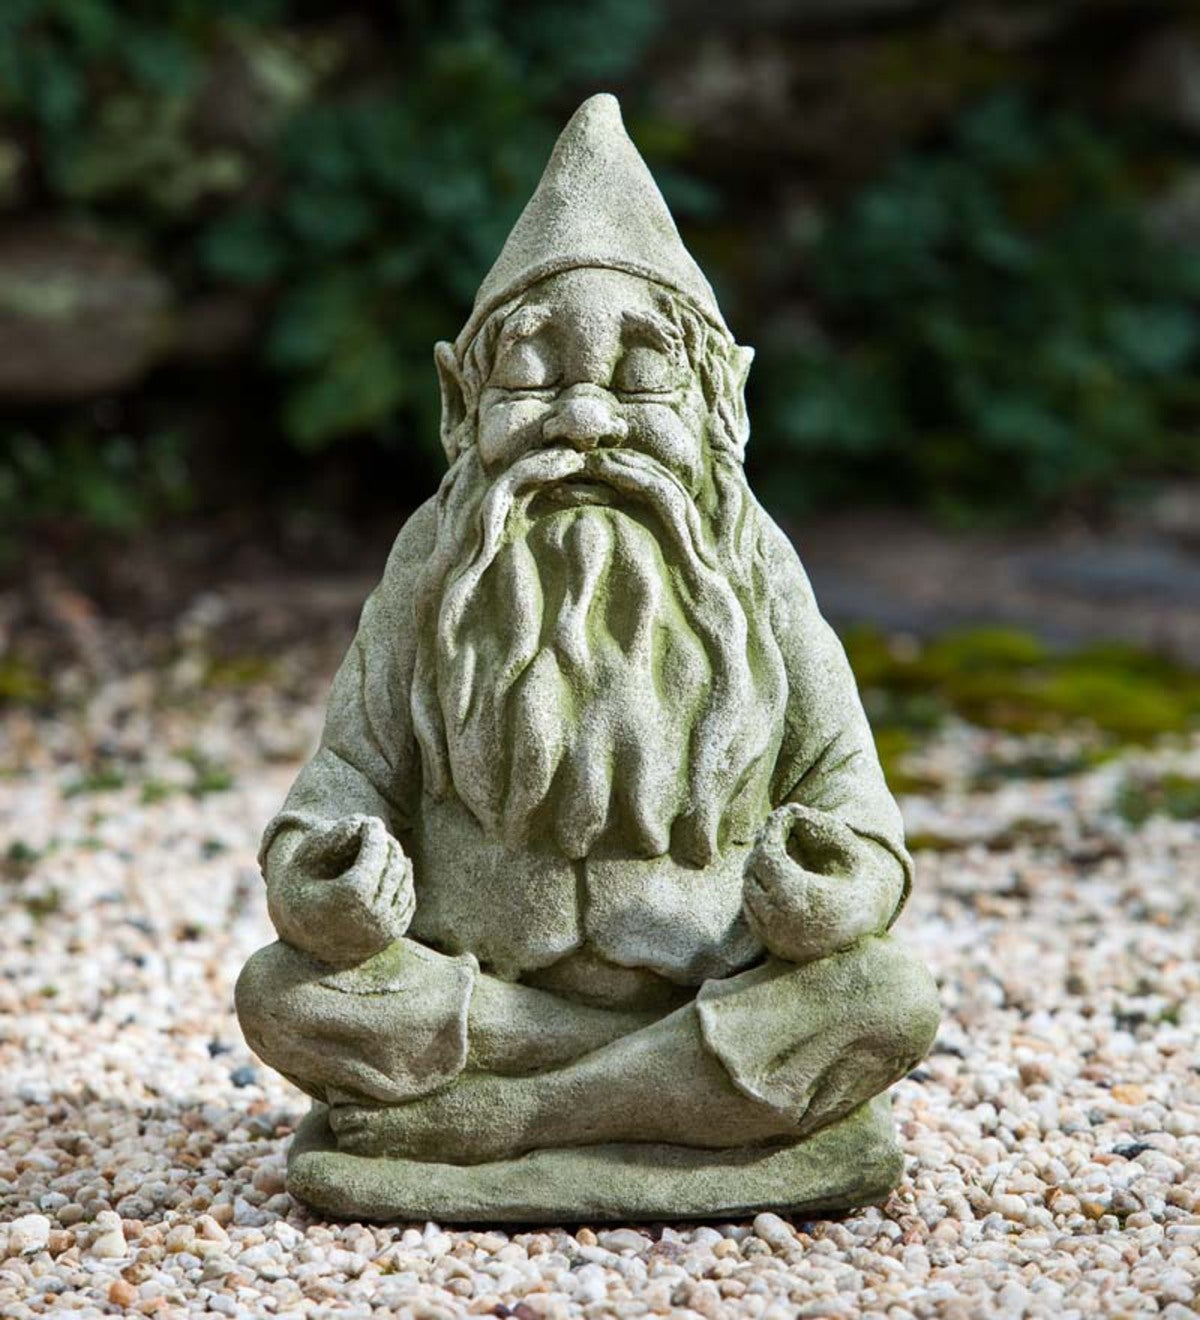 USA-Made Handcrafted Stone Big Fred Gnome Garden Statue